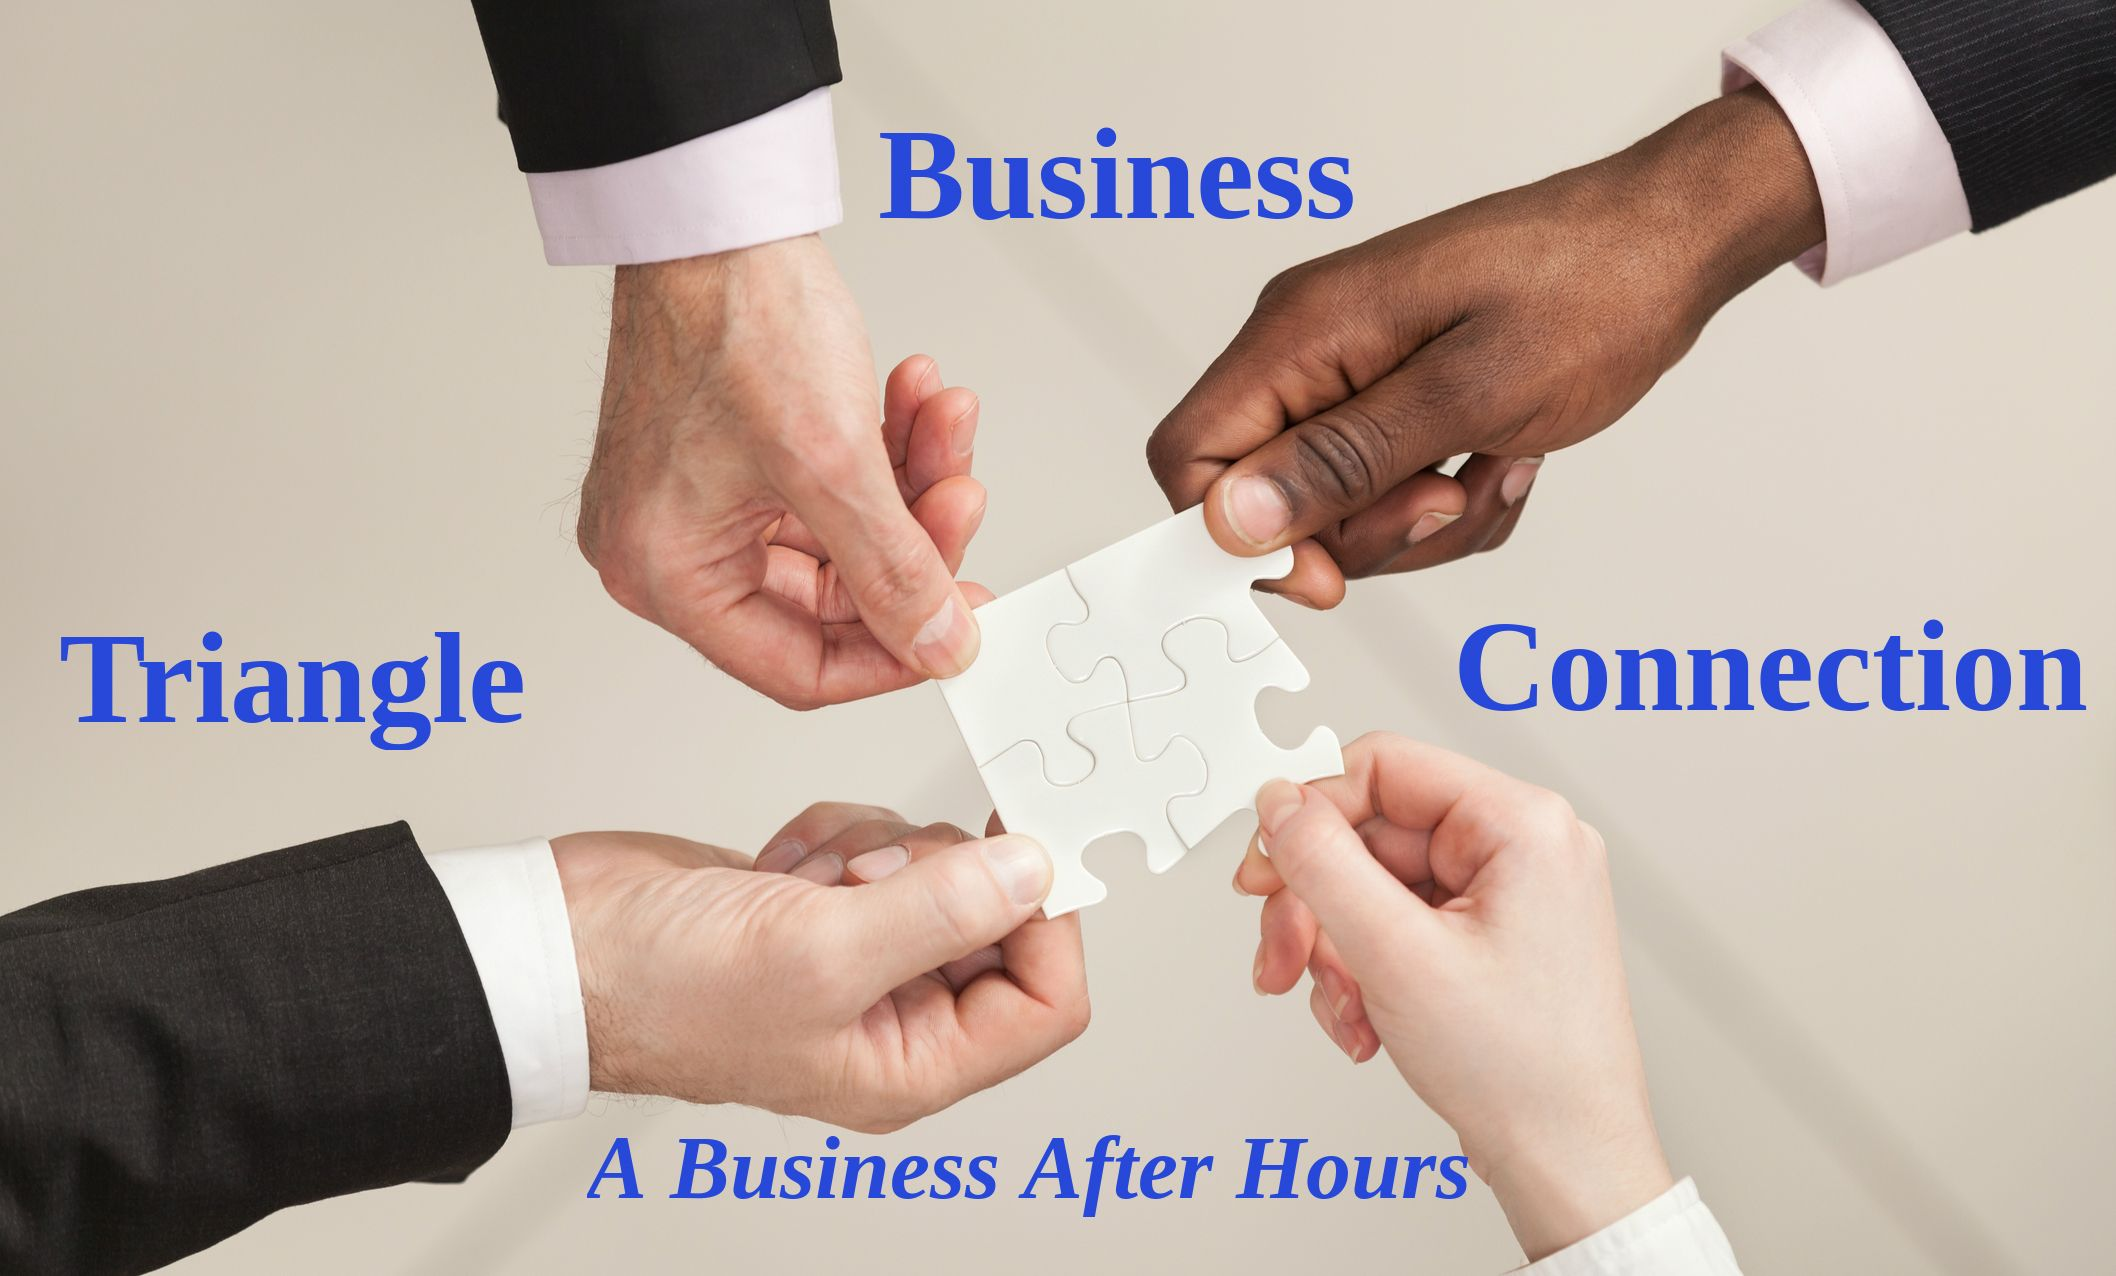 Triangle Business Connections - A Business After Hours